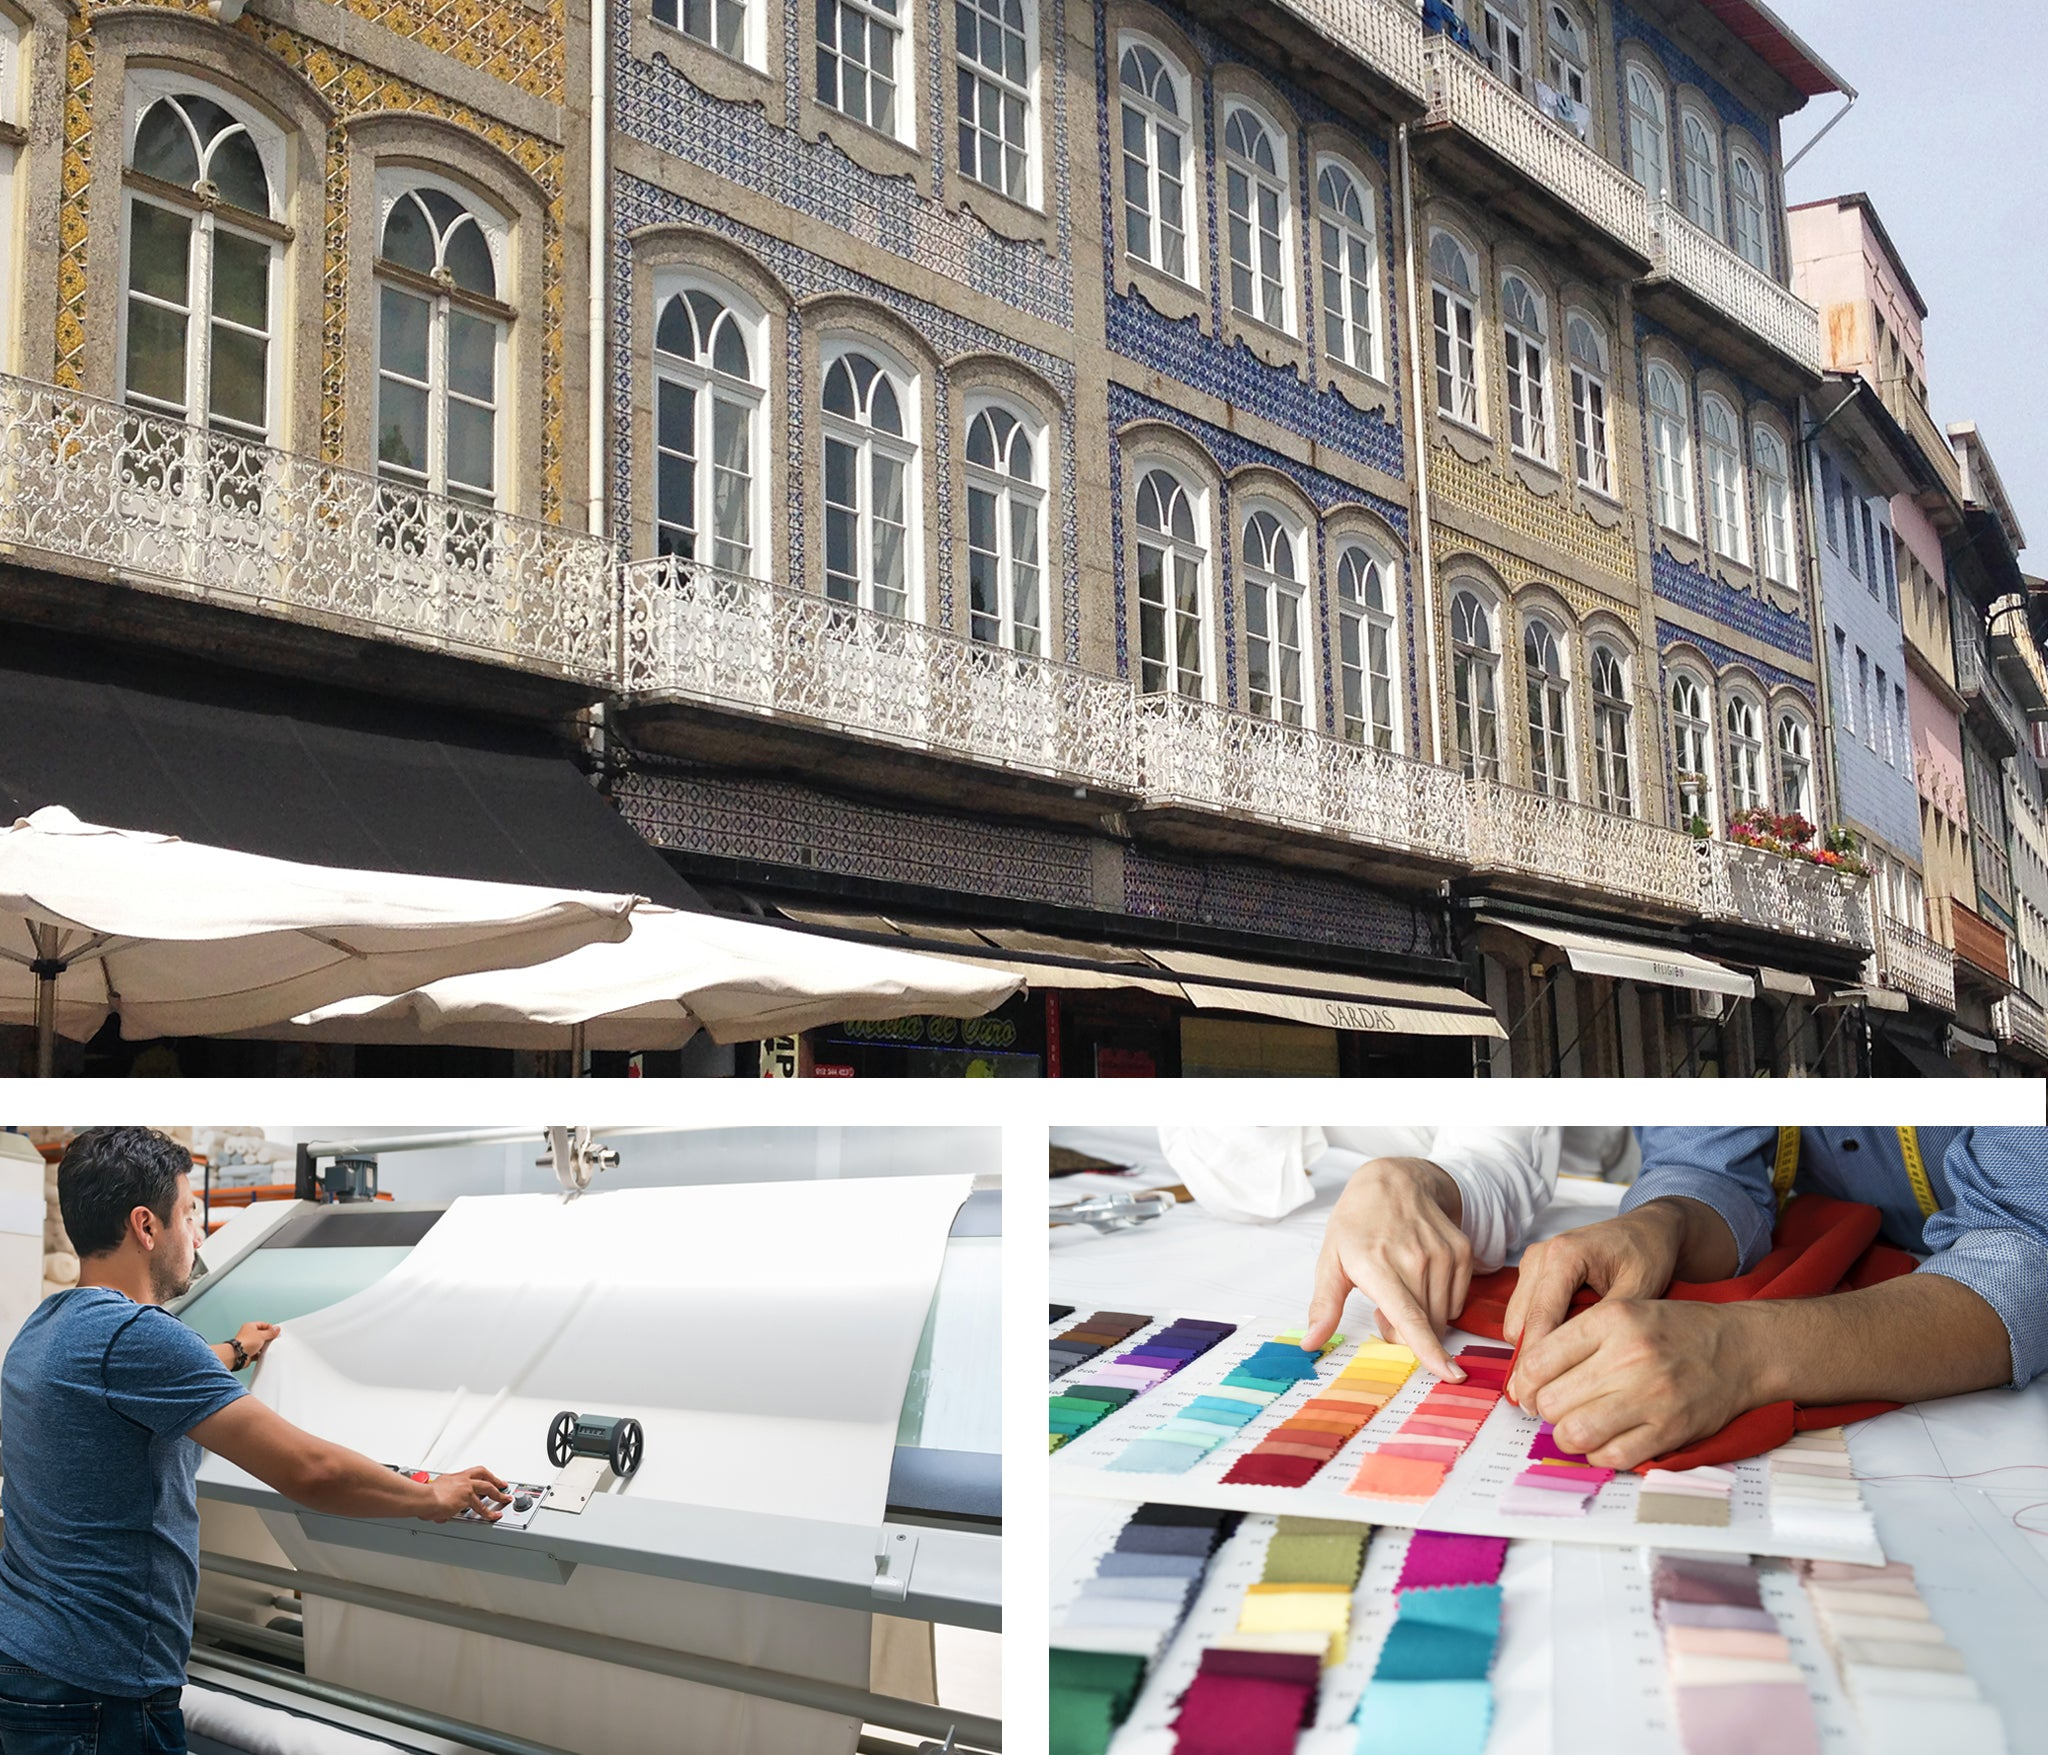 3 images together - Portugal street, inspection of fabric quality, selecting colour palette